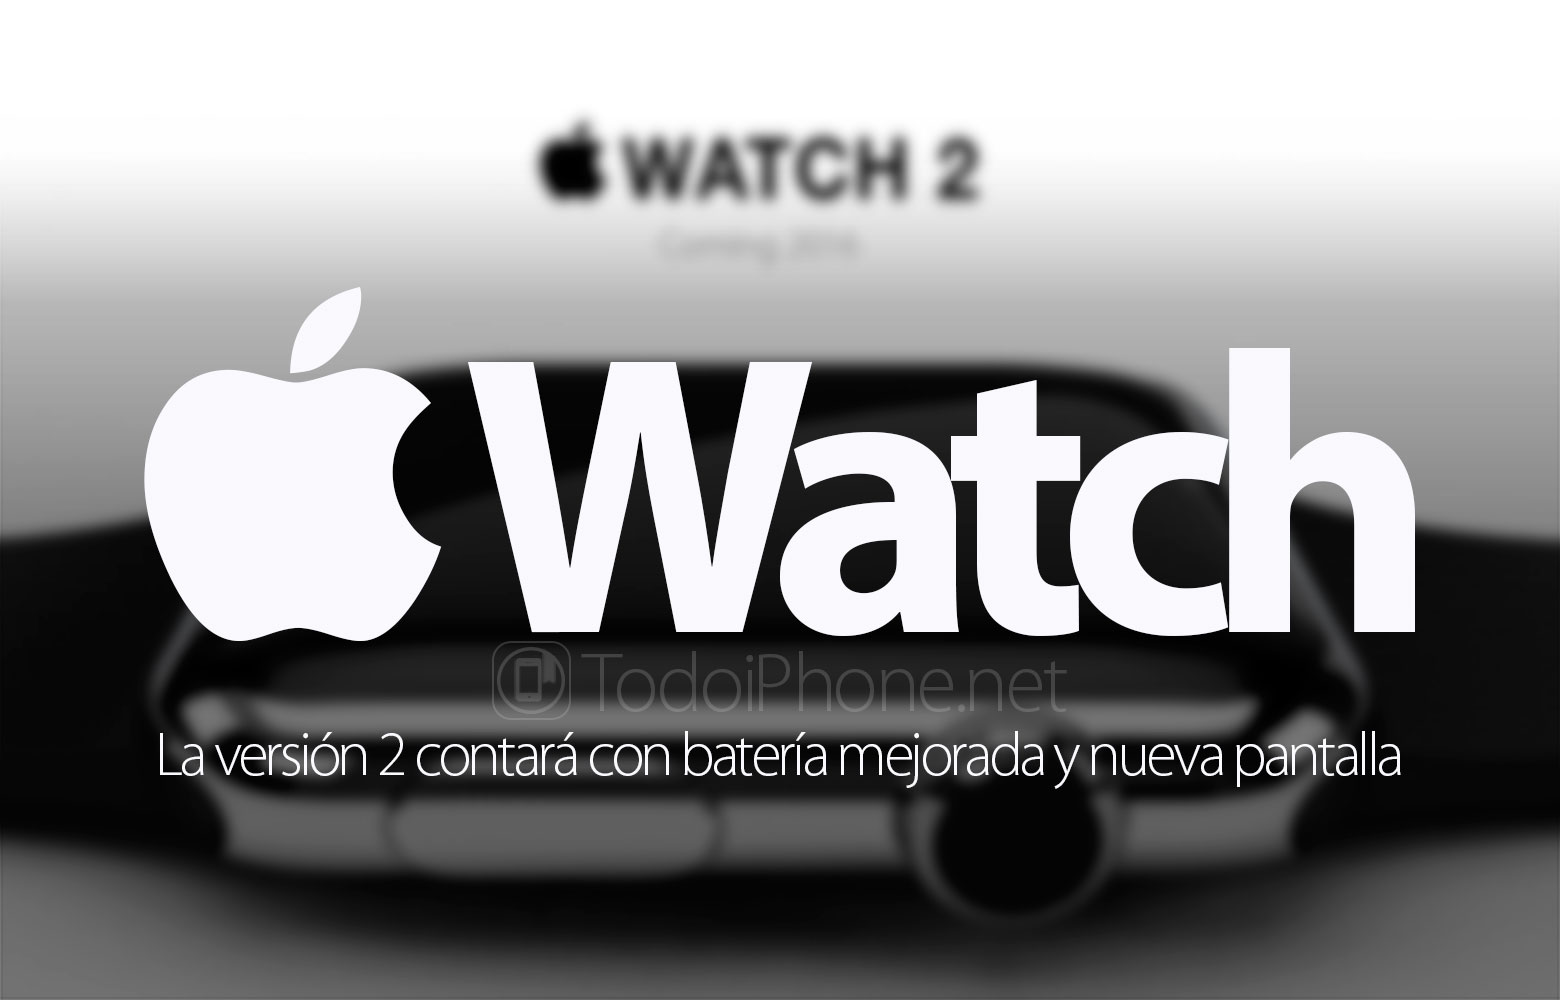 apple-watch-2-nueva-bateria-pantalla